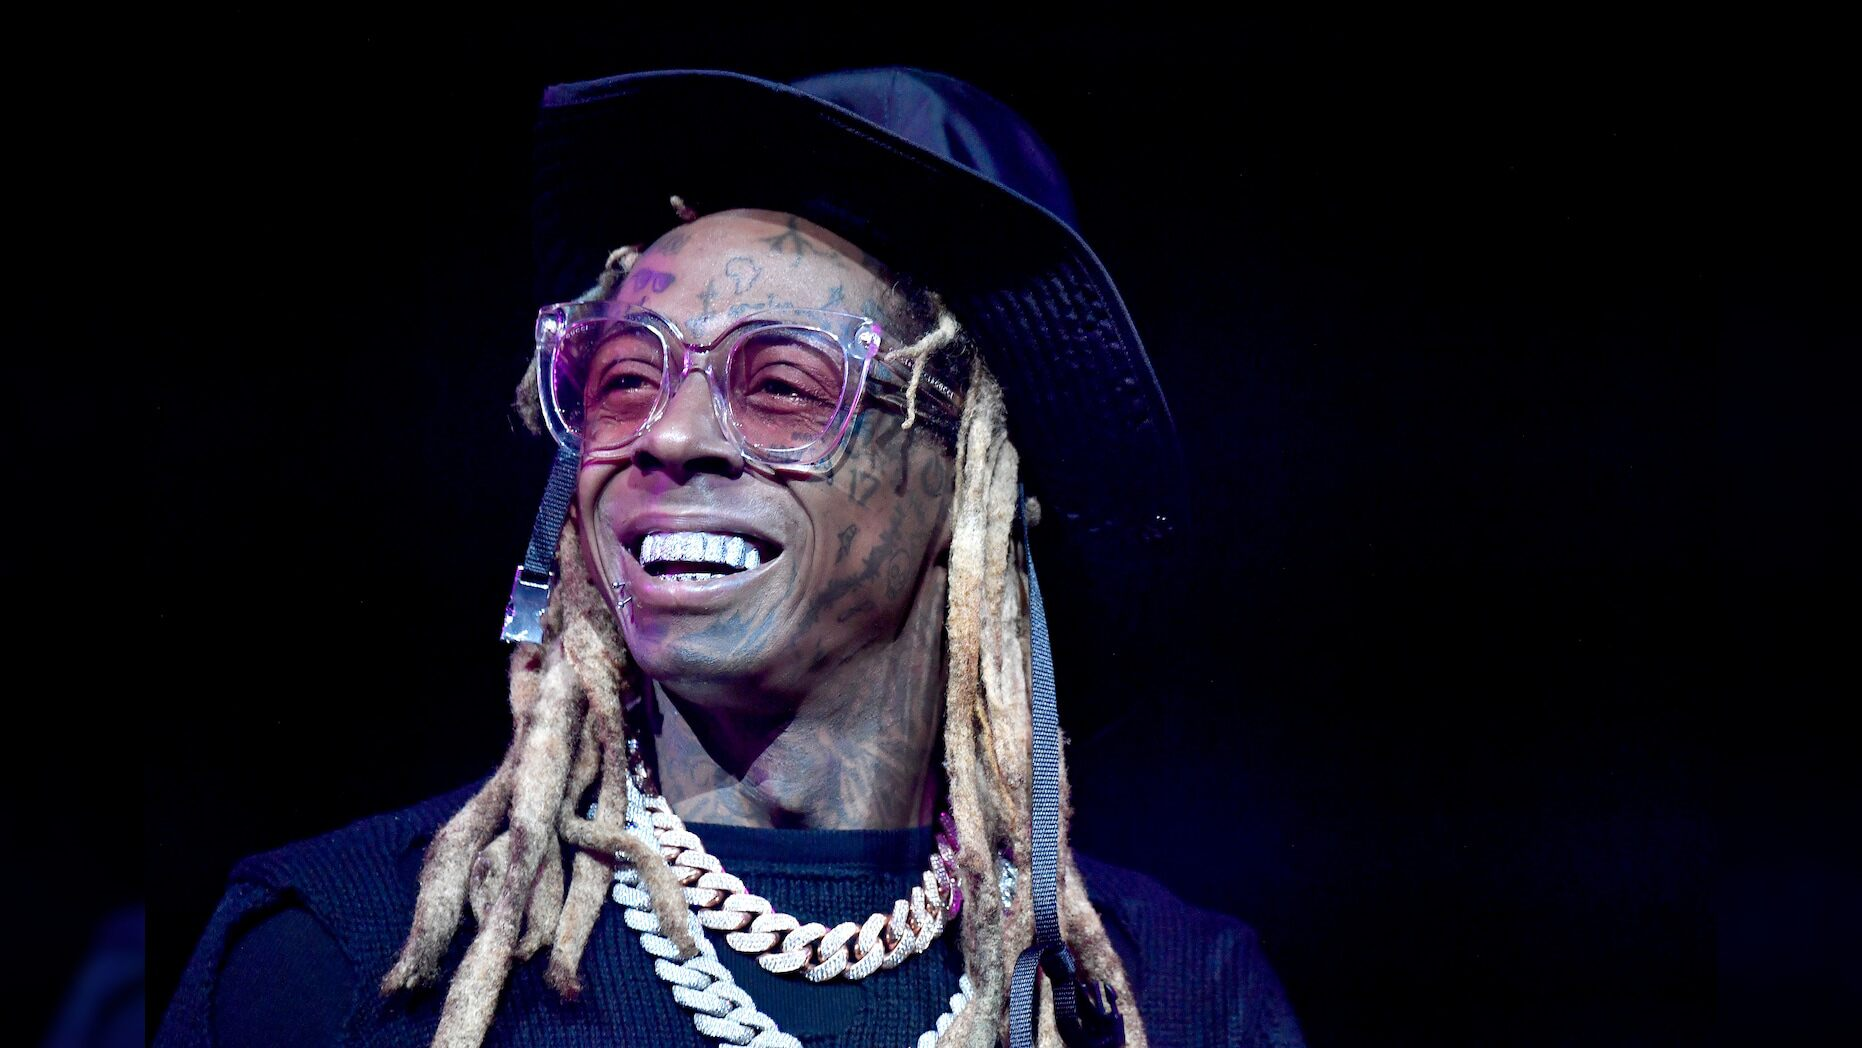 Lil Wayne pleads guilty to federal gun charge in Florida stemming from 2019 incident